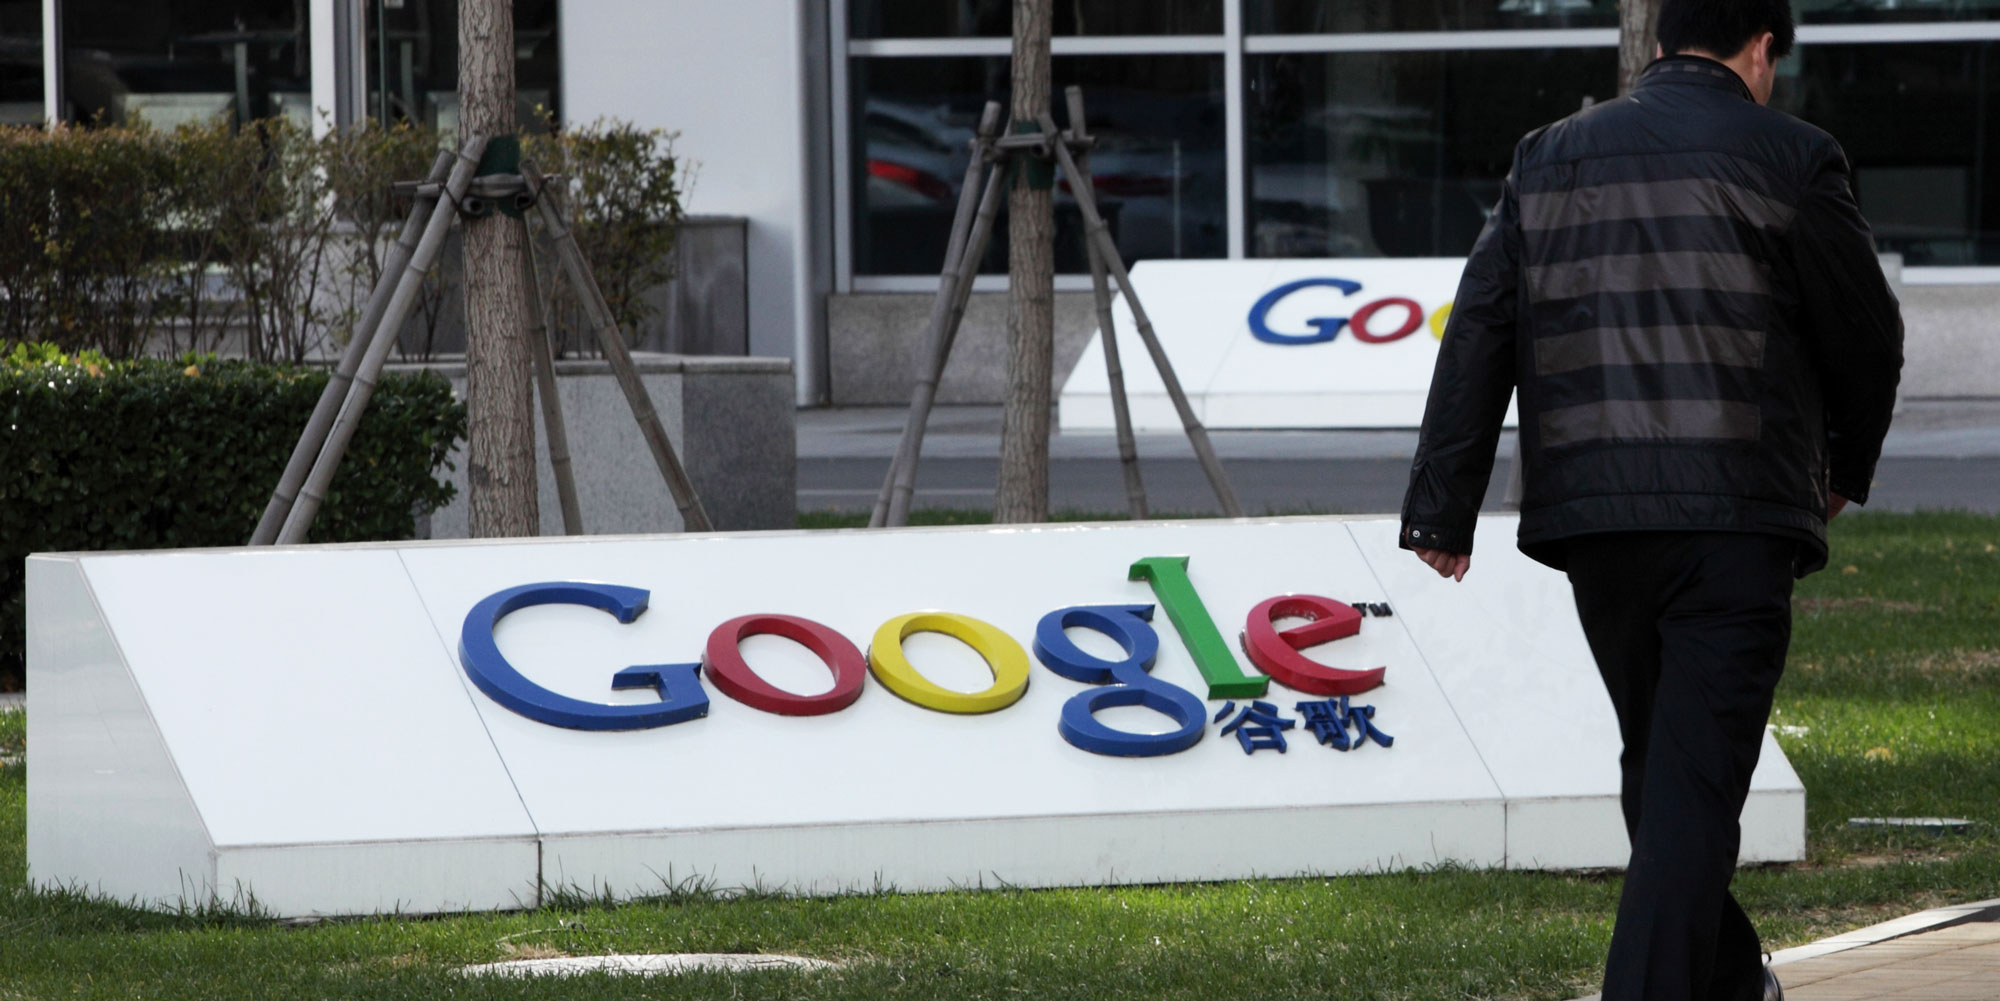 People's Daily Welcomes Google's Return to China